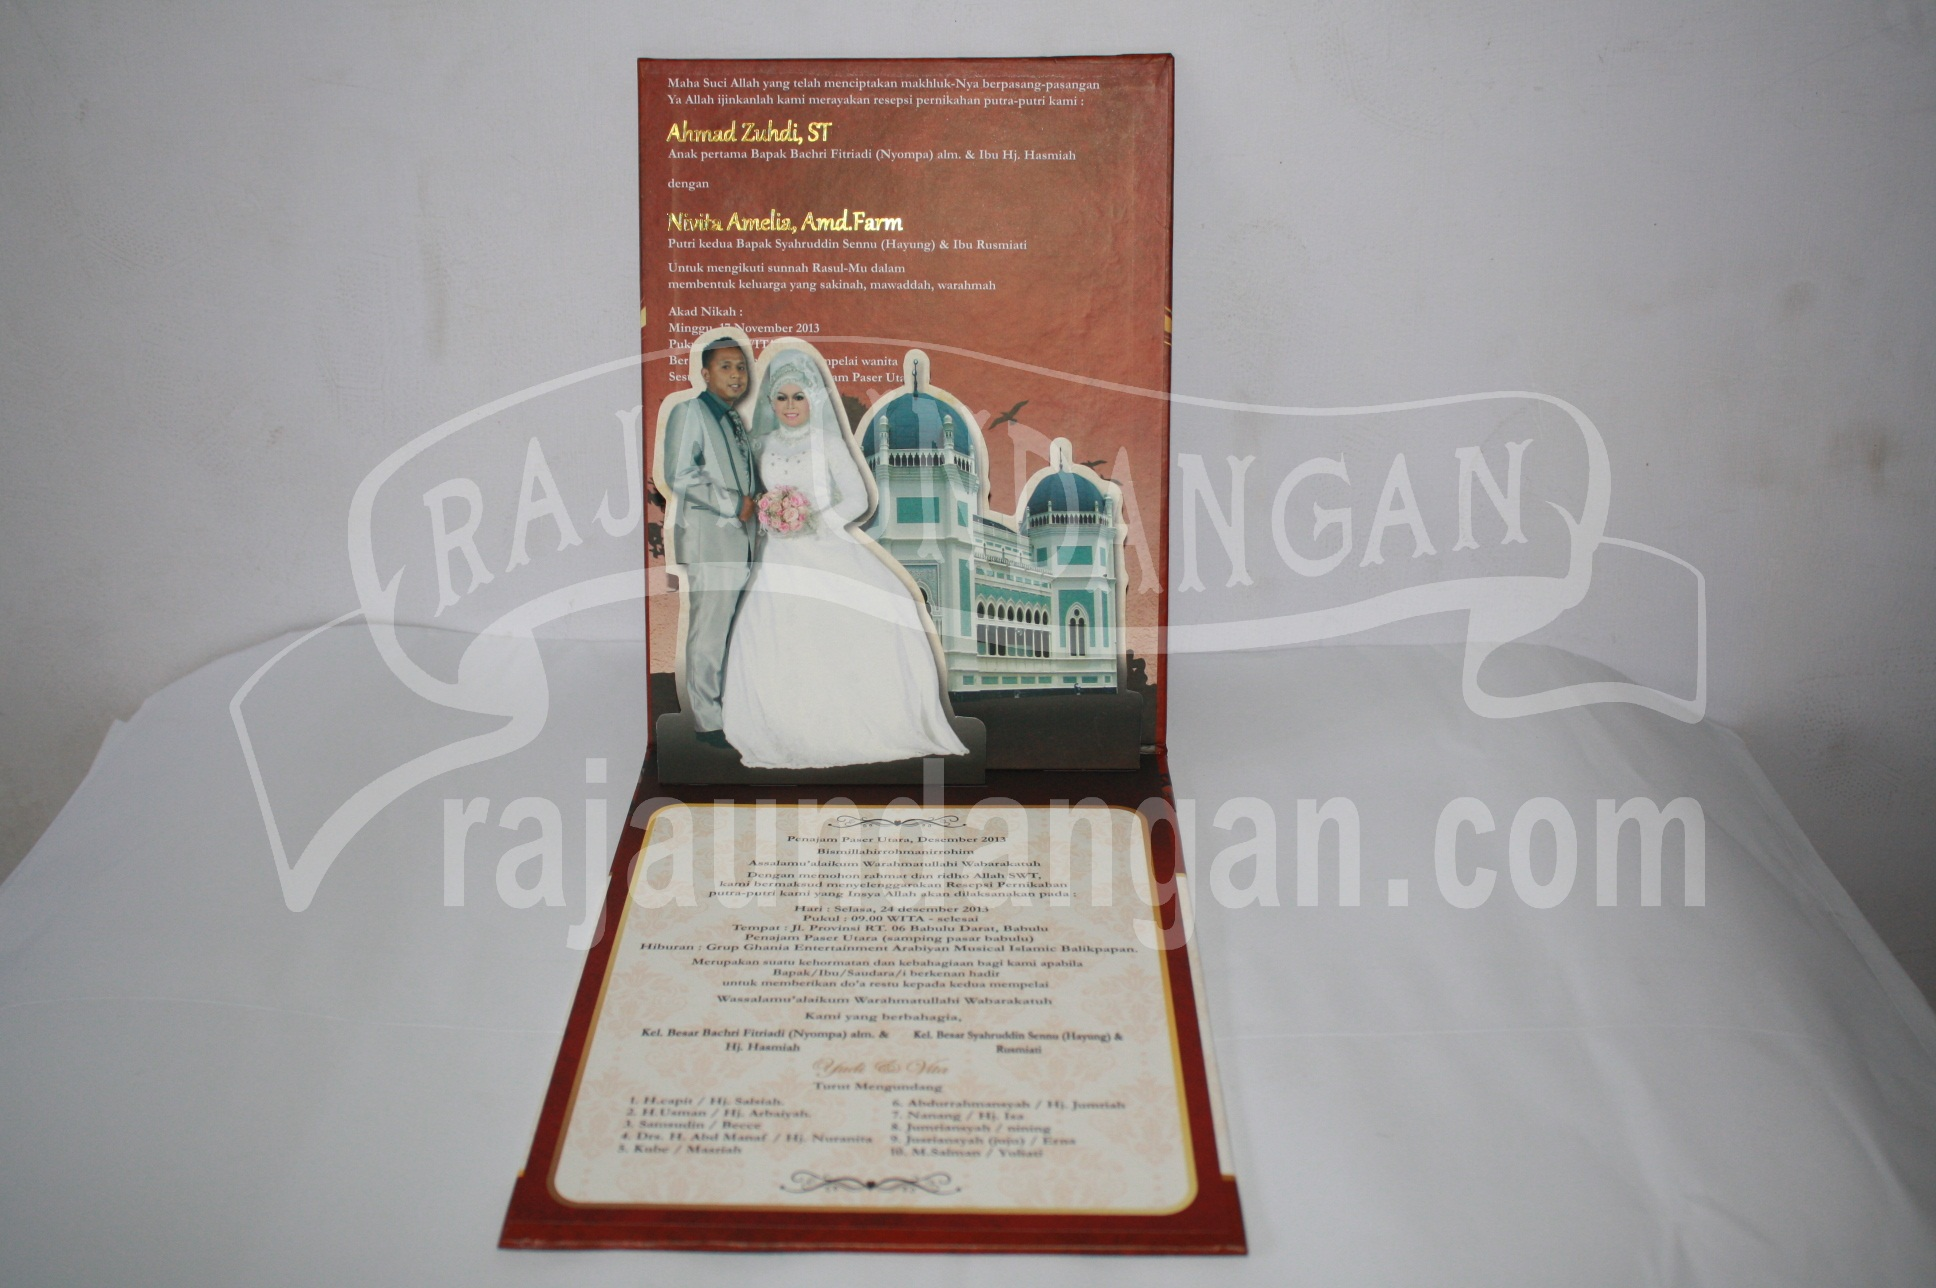 Undangan Pernikahan Hardcover Pop Up Pakai Amplop Yudi dan Vita EDC 44 2 - Membuat Wedding Invitations Eksklusif di Jeruk